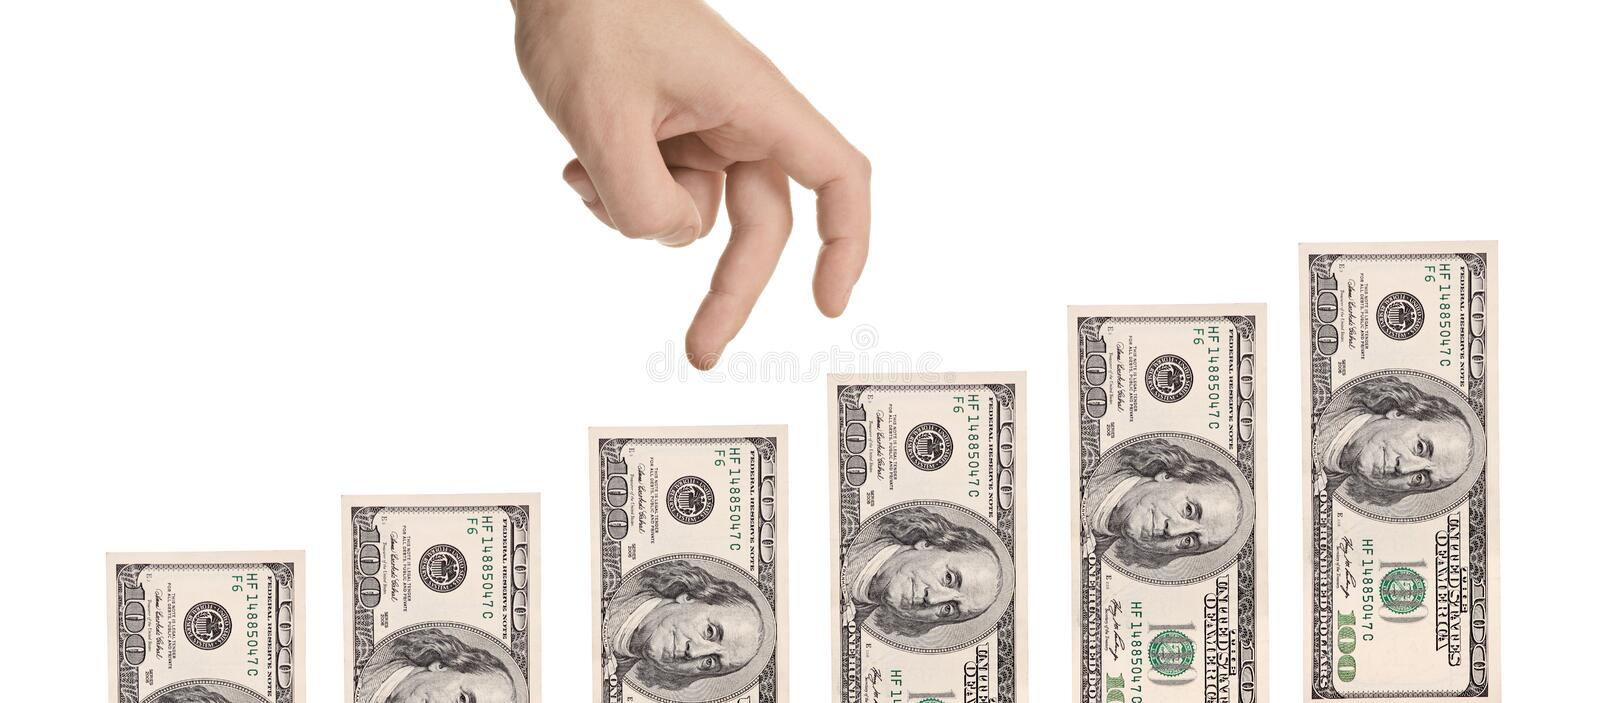 Download Hand Gesturing Moving Over US Dollars Stock Photo - Image: 16974162